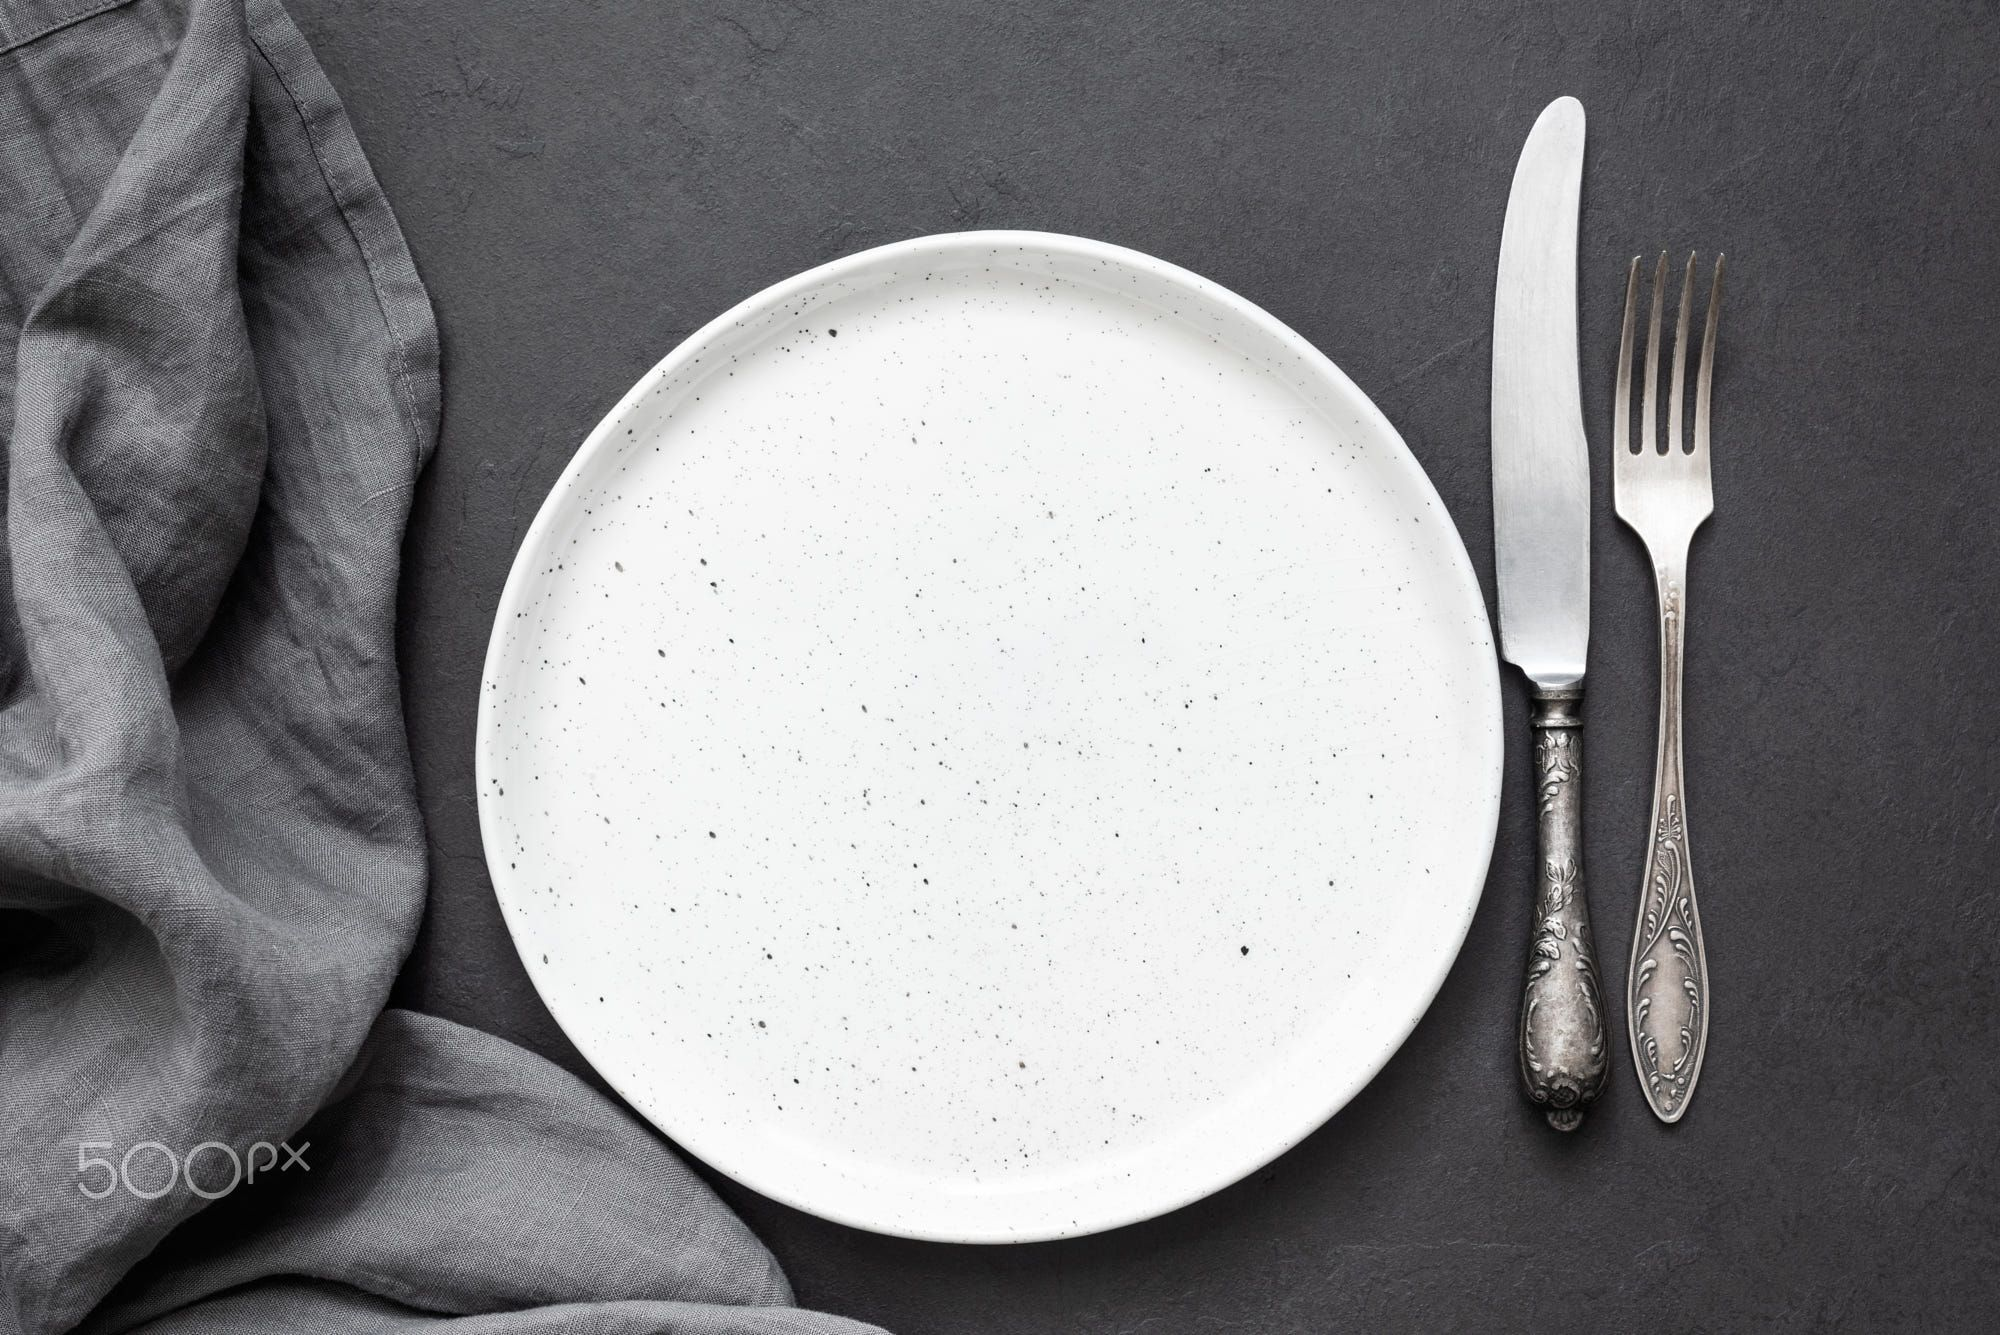 Vintage Cutlery Or Silverware Empty Plate And Kitchen Textile Napkin Top View Copy Space For Text Fotografi Makanan Foto Makanan Makanan